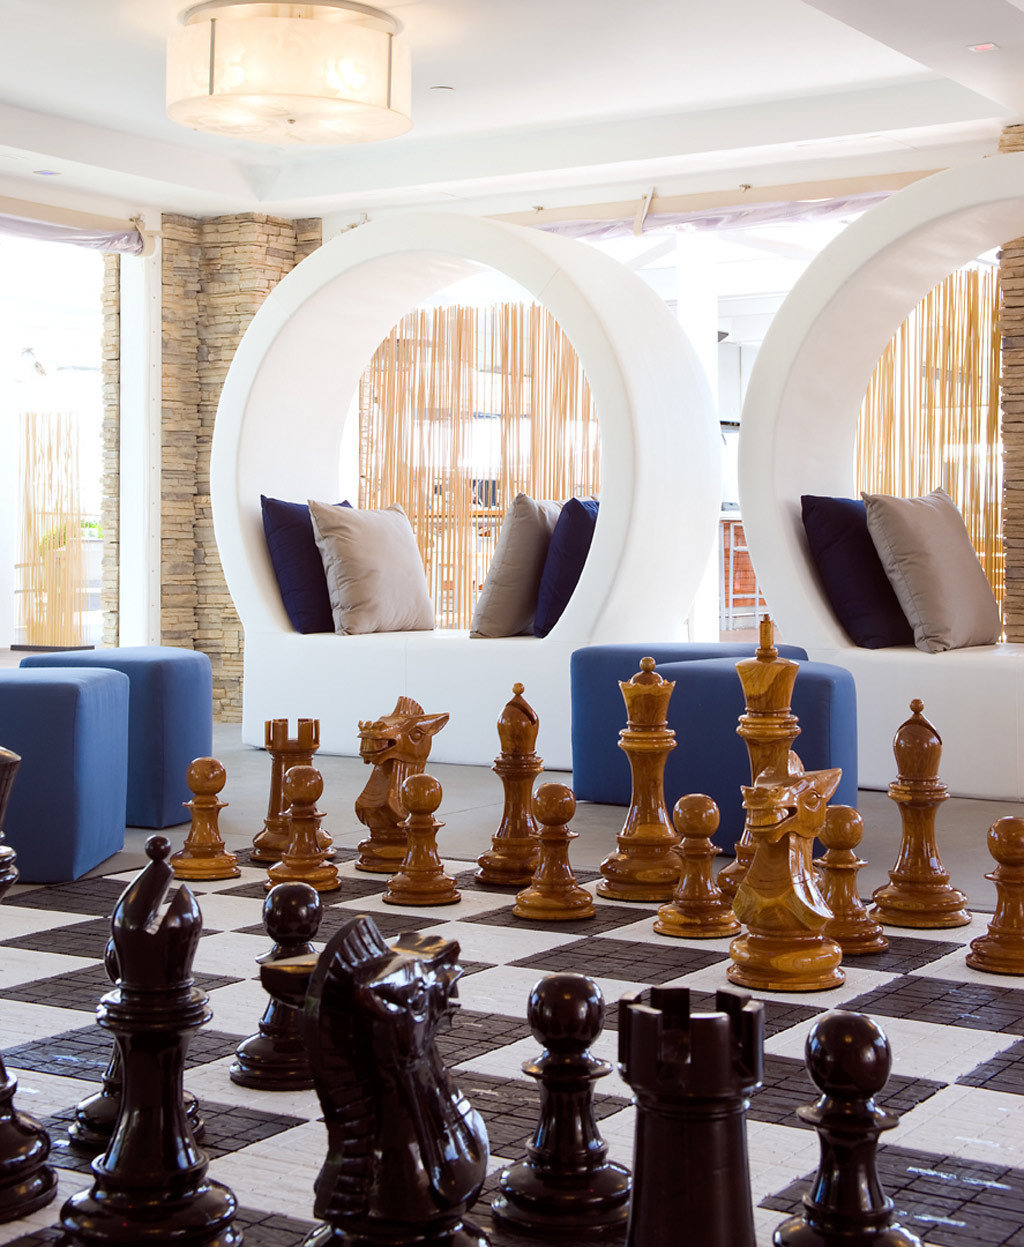 Entertainment Play Resort games chess indoor games and sports board game sports recreation tabletop game